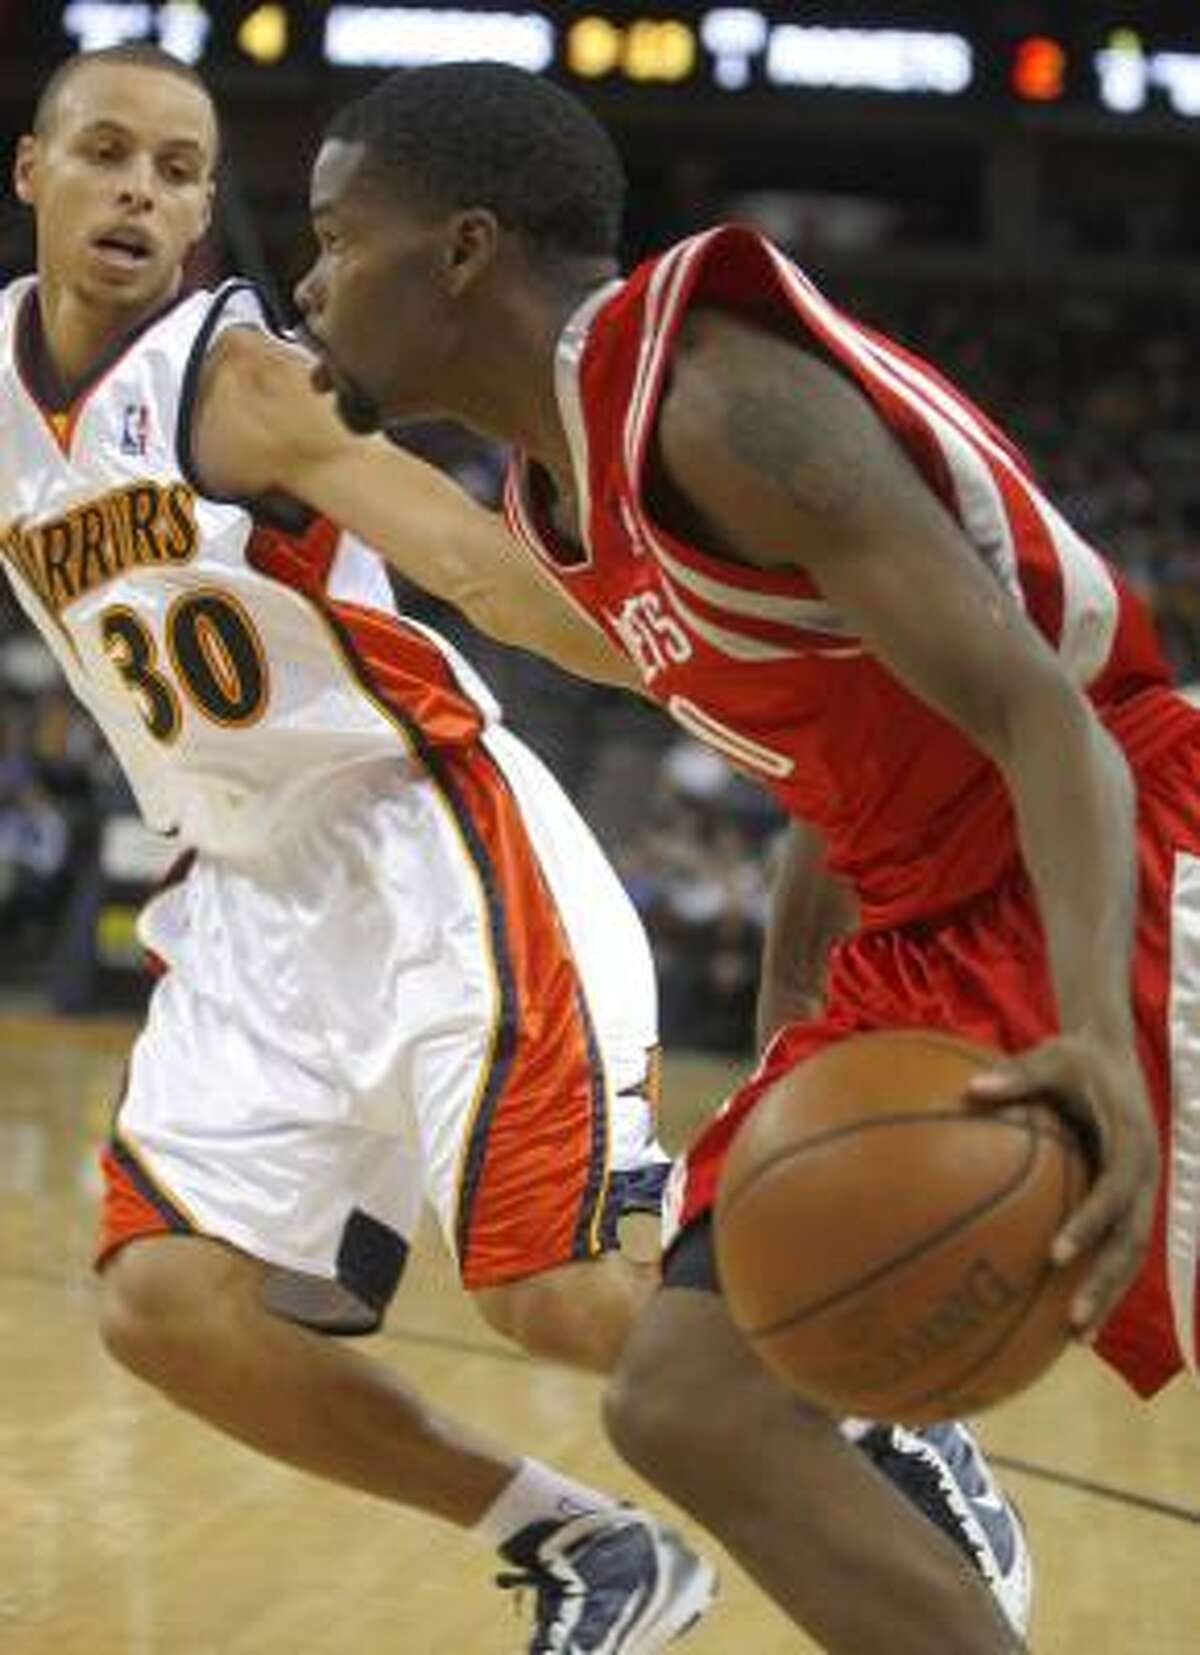 Aaron Brooks, right, drives on Stephen Curry. Brooks shot 6-for-16 from the floor for 18 points.